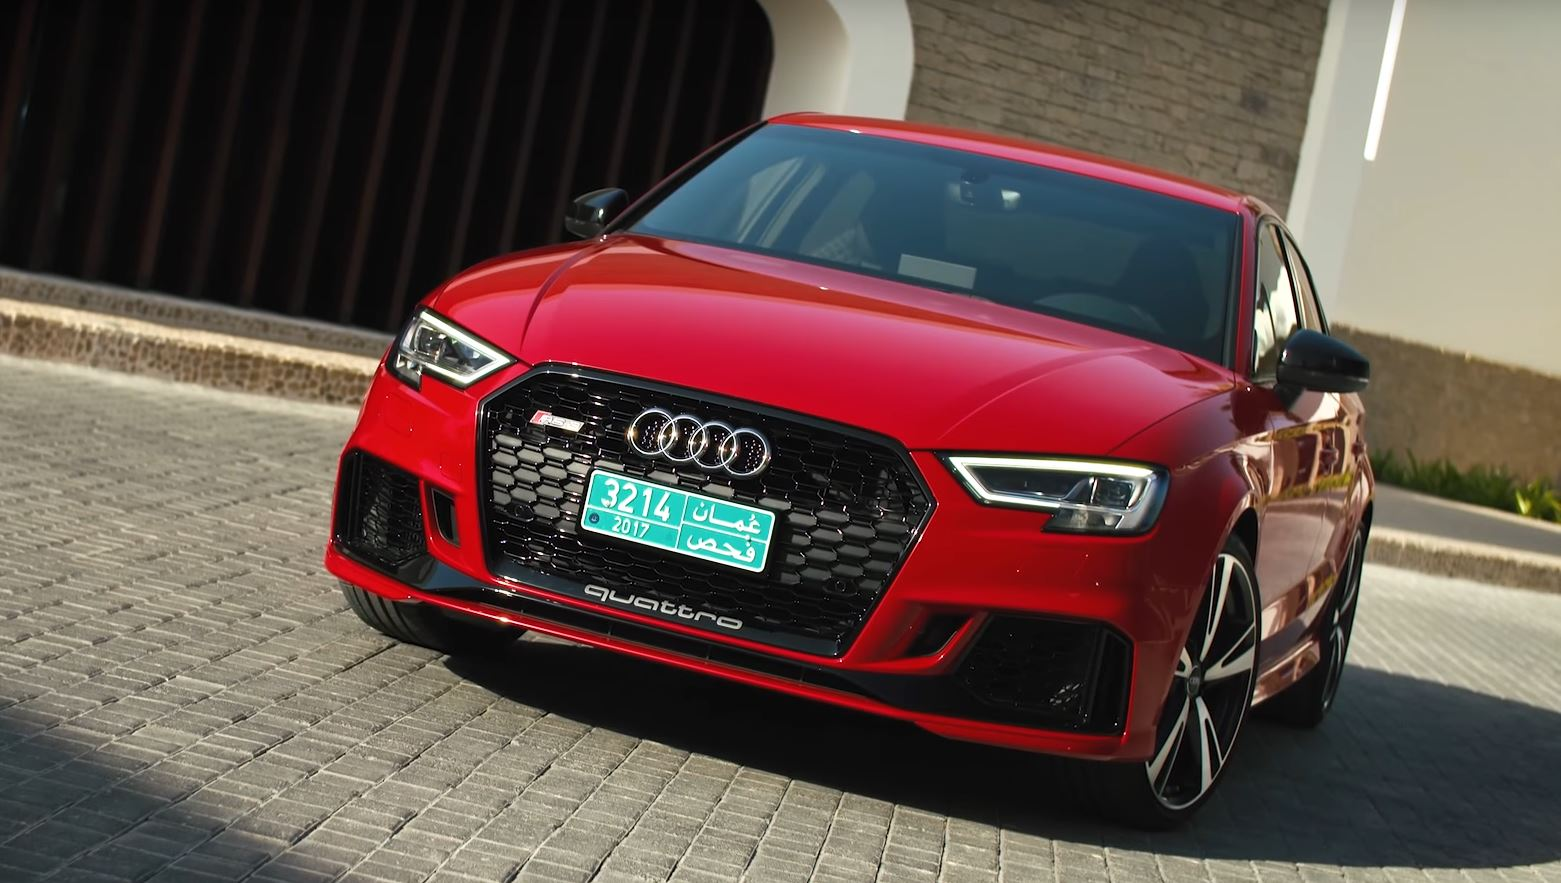 2018 Audi Rs3 Sedan Is A 2 5l Turbo Practical Rocket Says Review